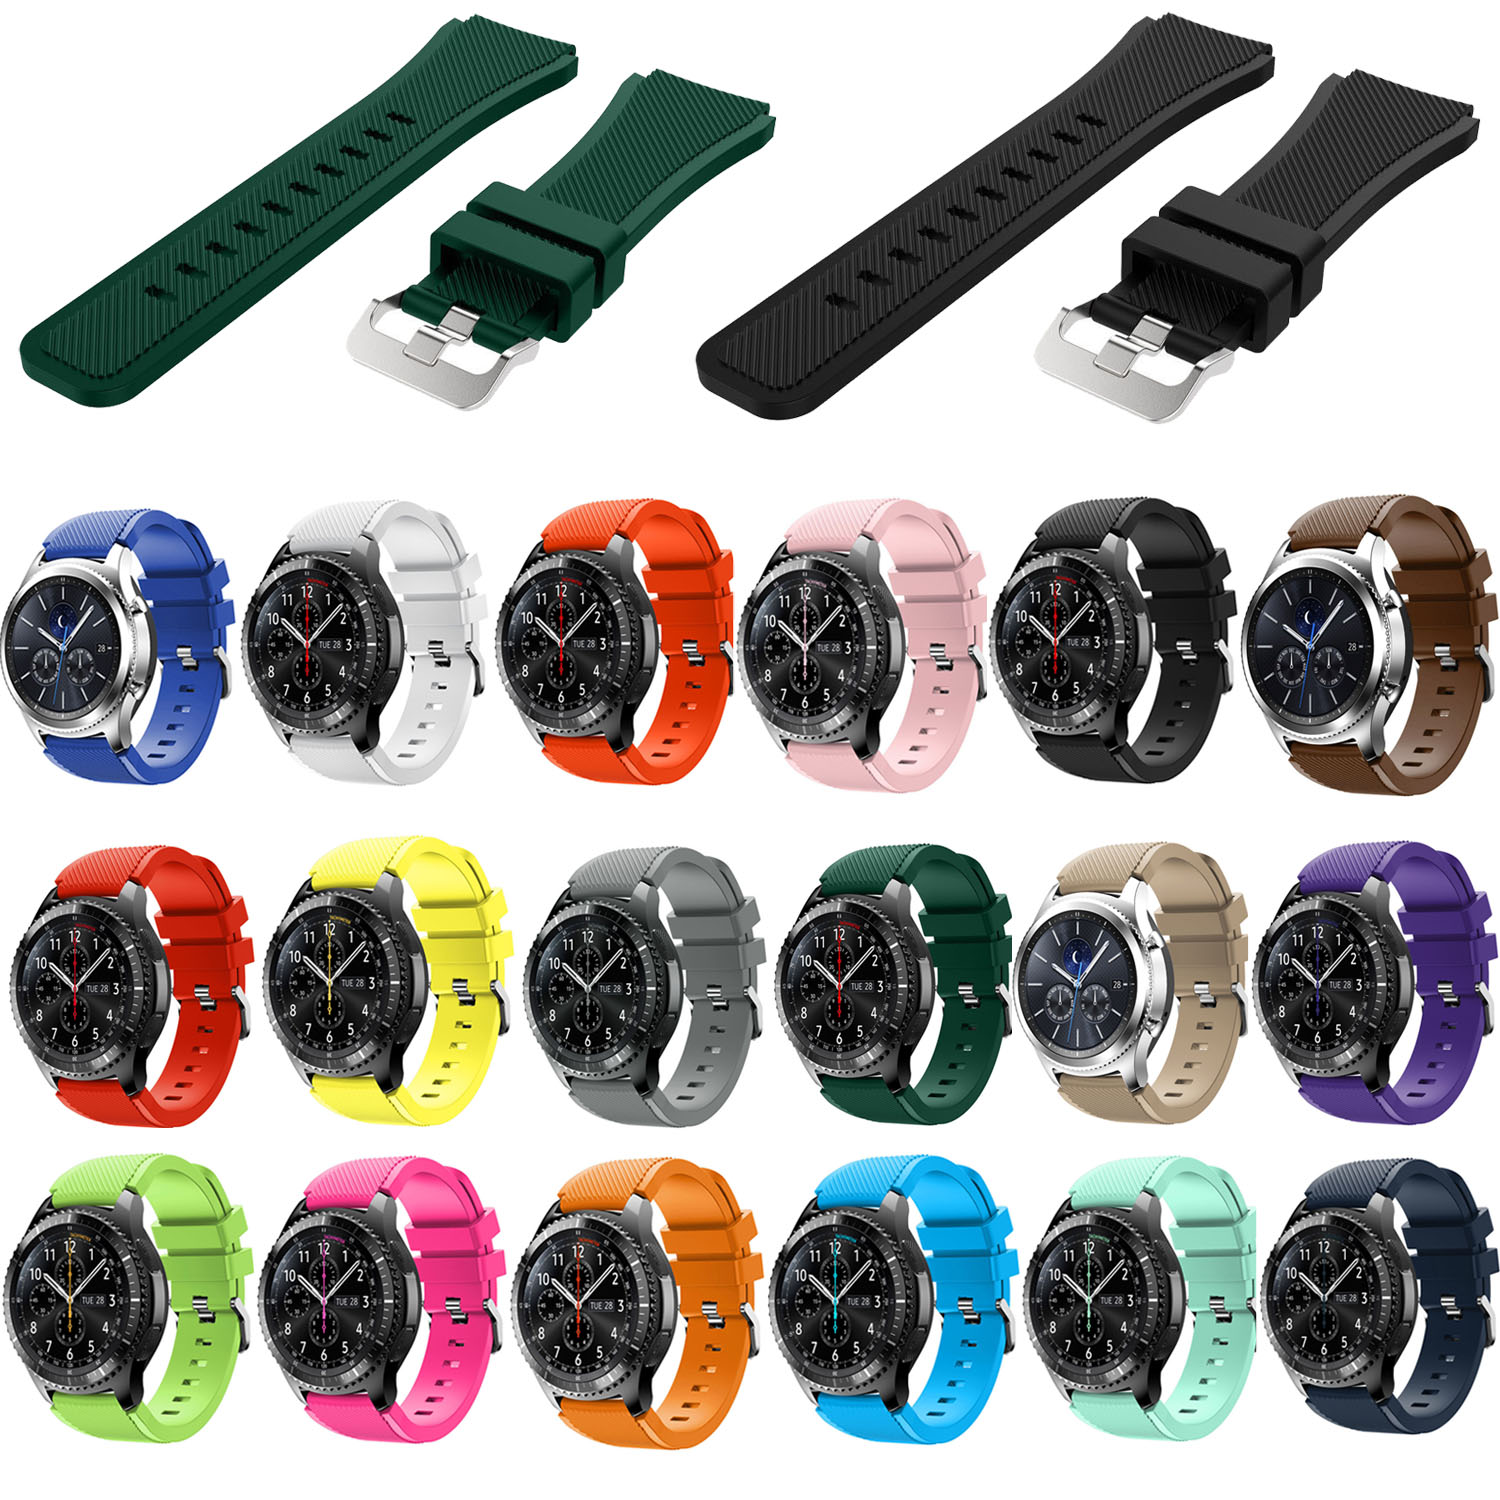 18 Colors Rubber Wrist Strap for Samsung Gear S3 Frontier Silicone Watch Band for Samsung Gear S3 Classic Bracelet Band 22mm футболка print bar ингушетия